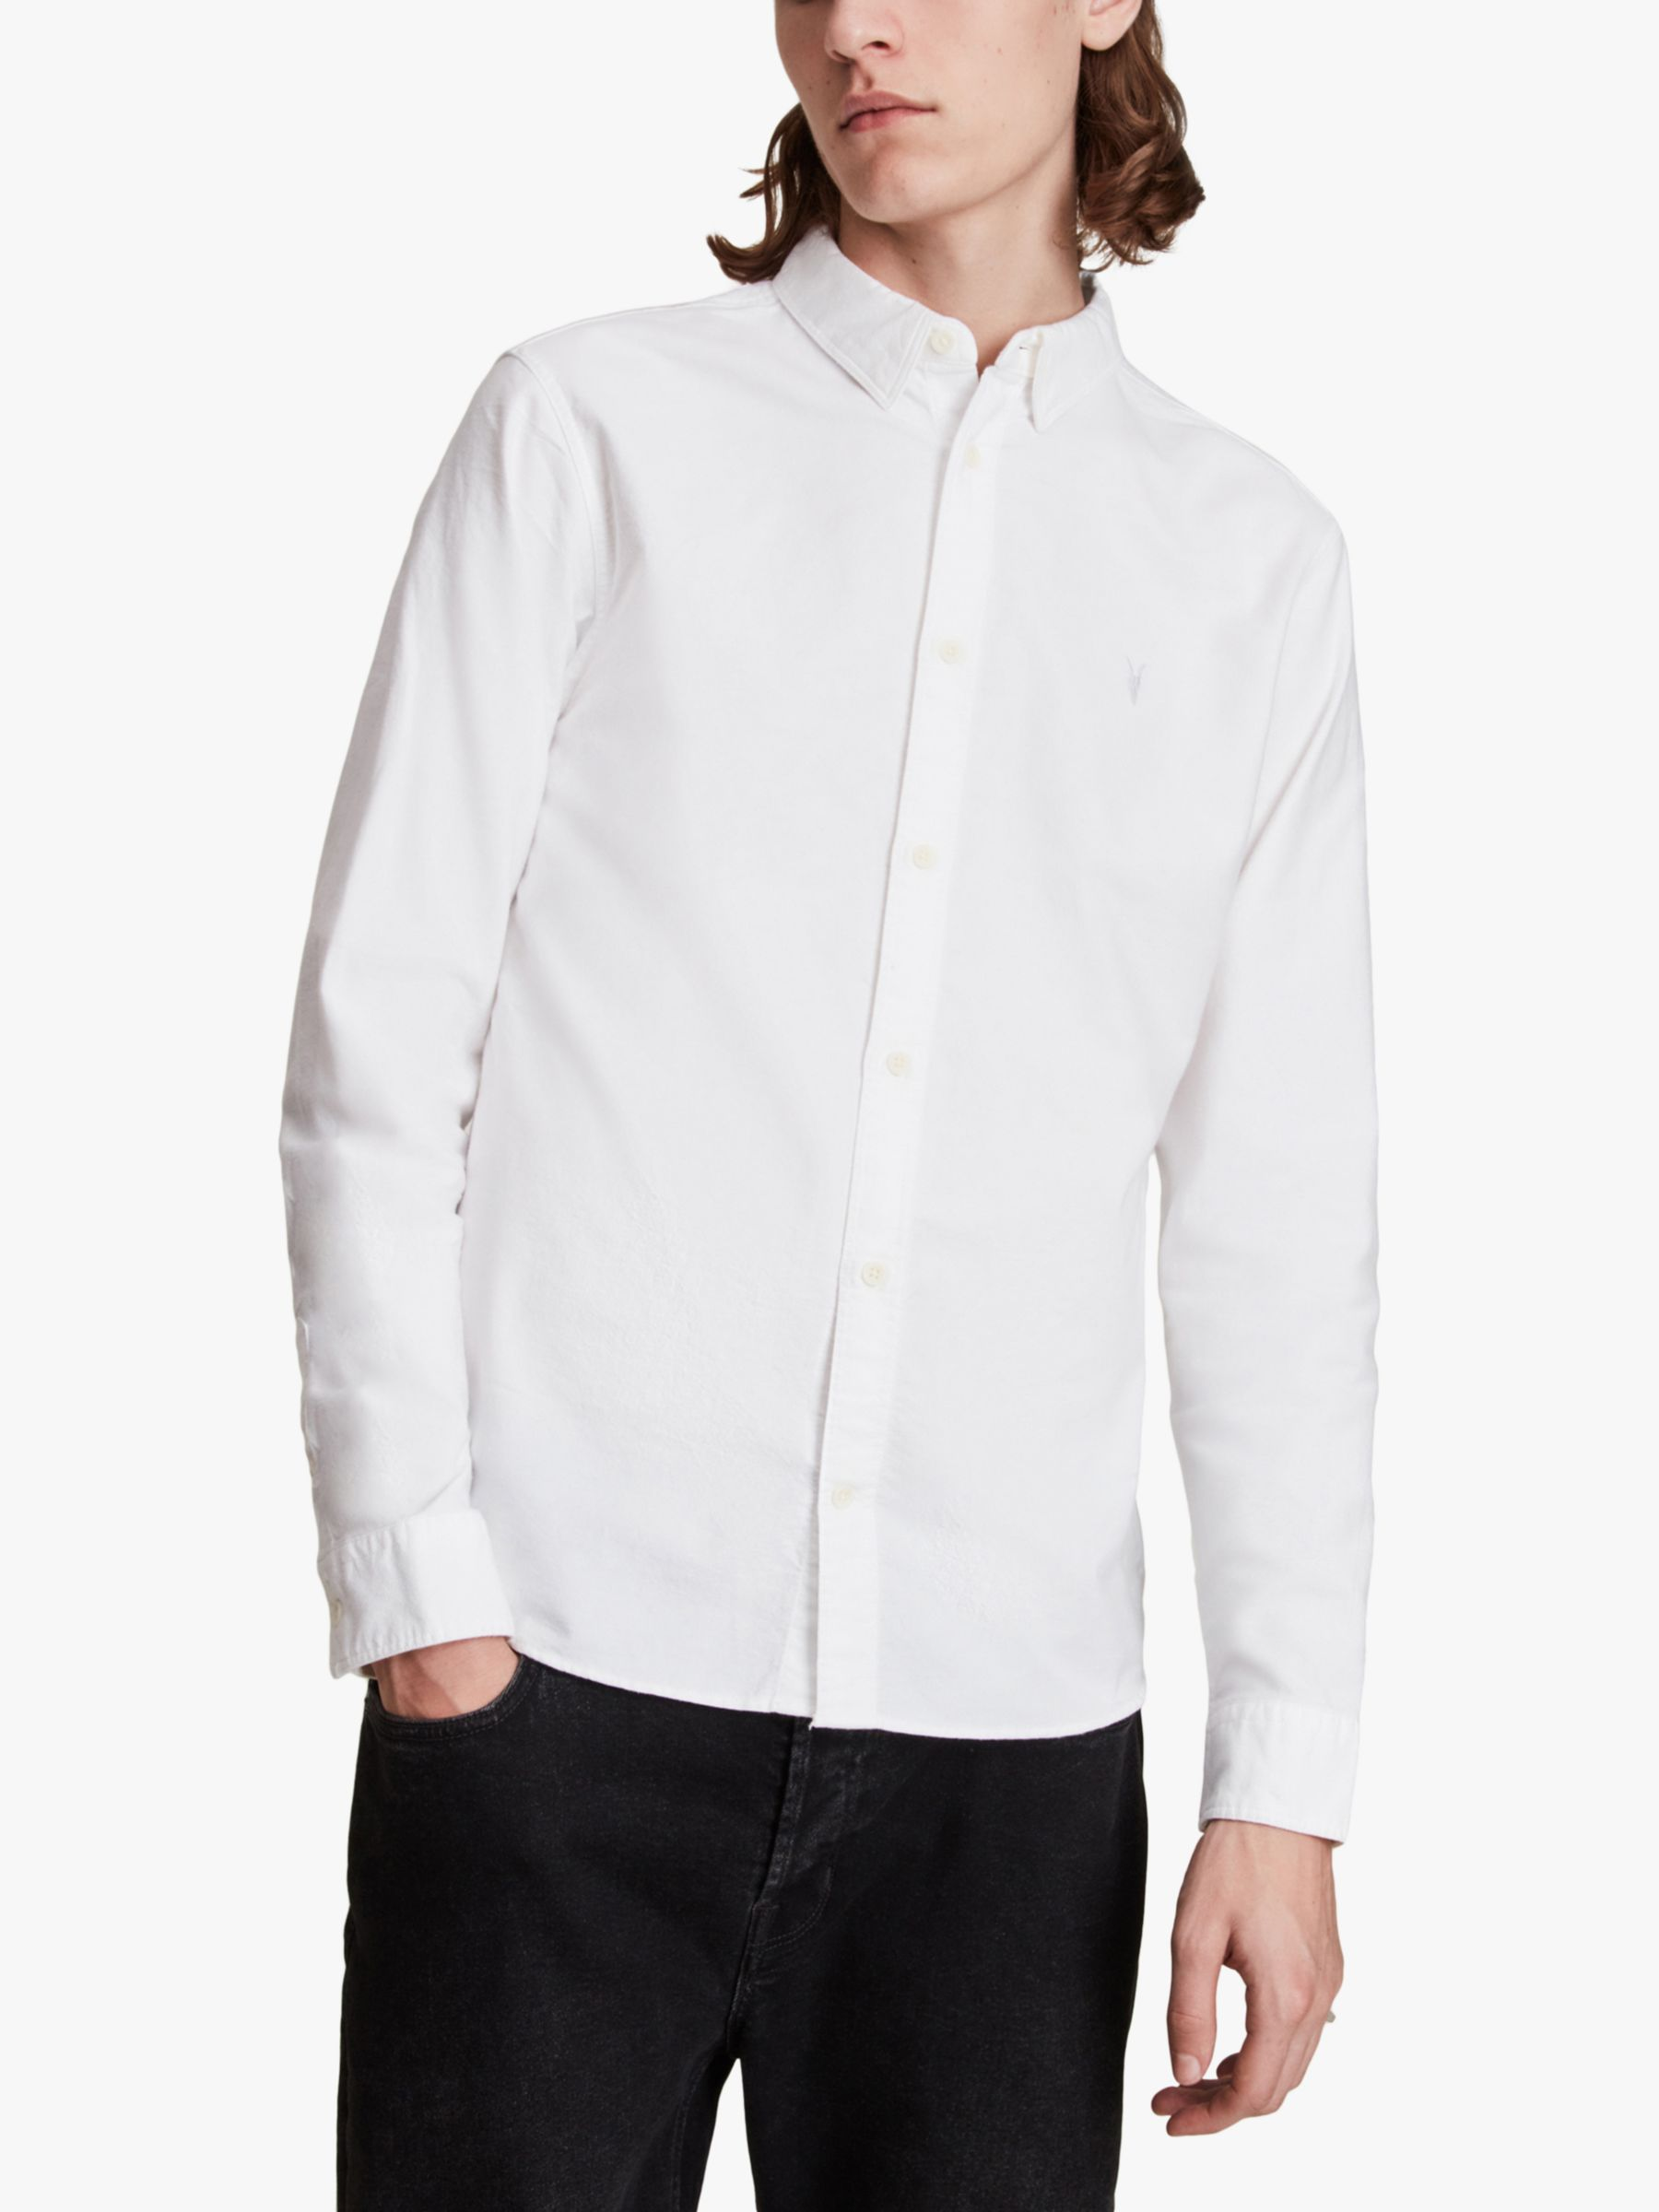 AllSaints AllSaints Hungtingdon Slim Fit Shirt